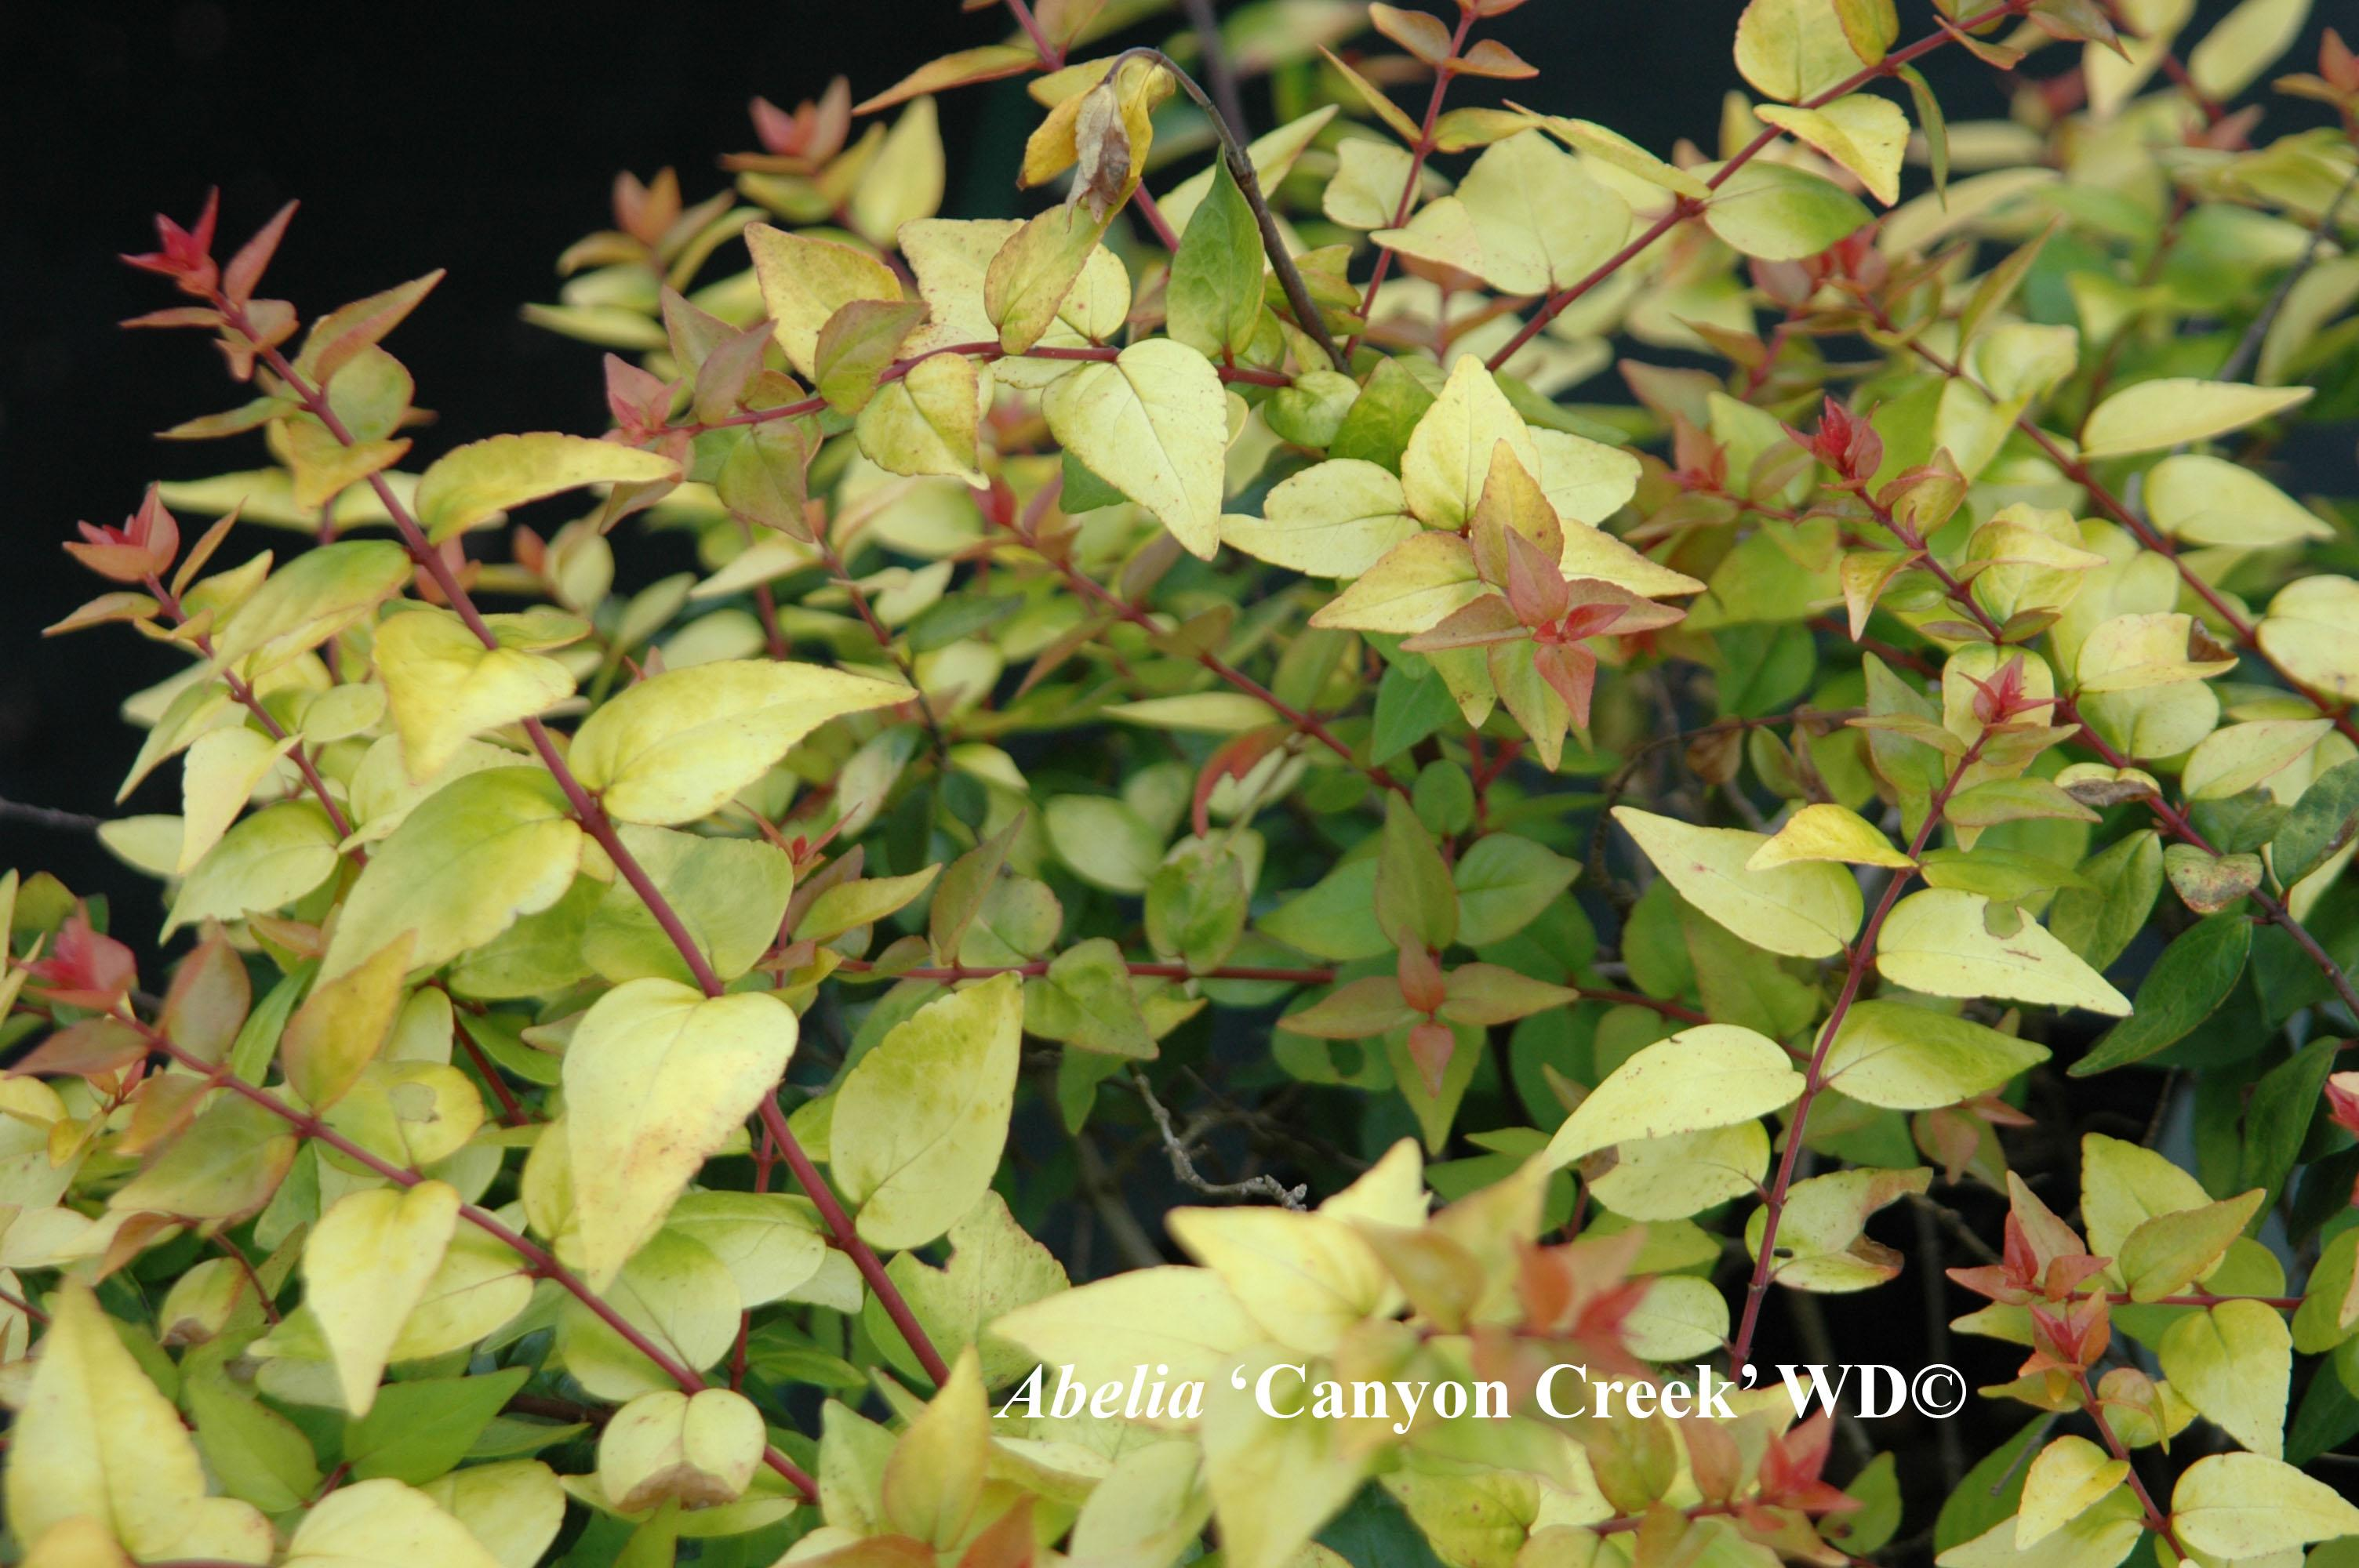 Abelia xgrandiflora Cultivars - Canyon Creek and others